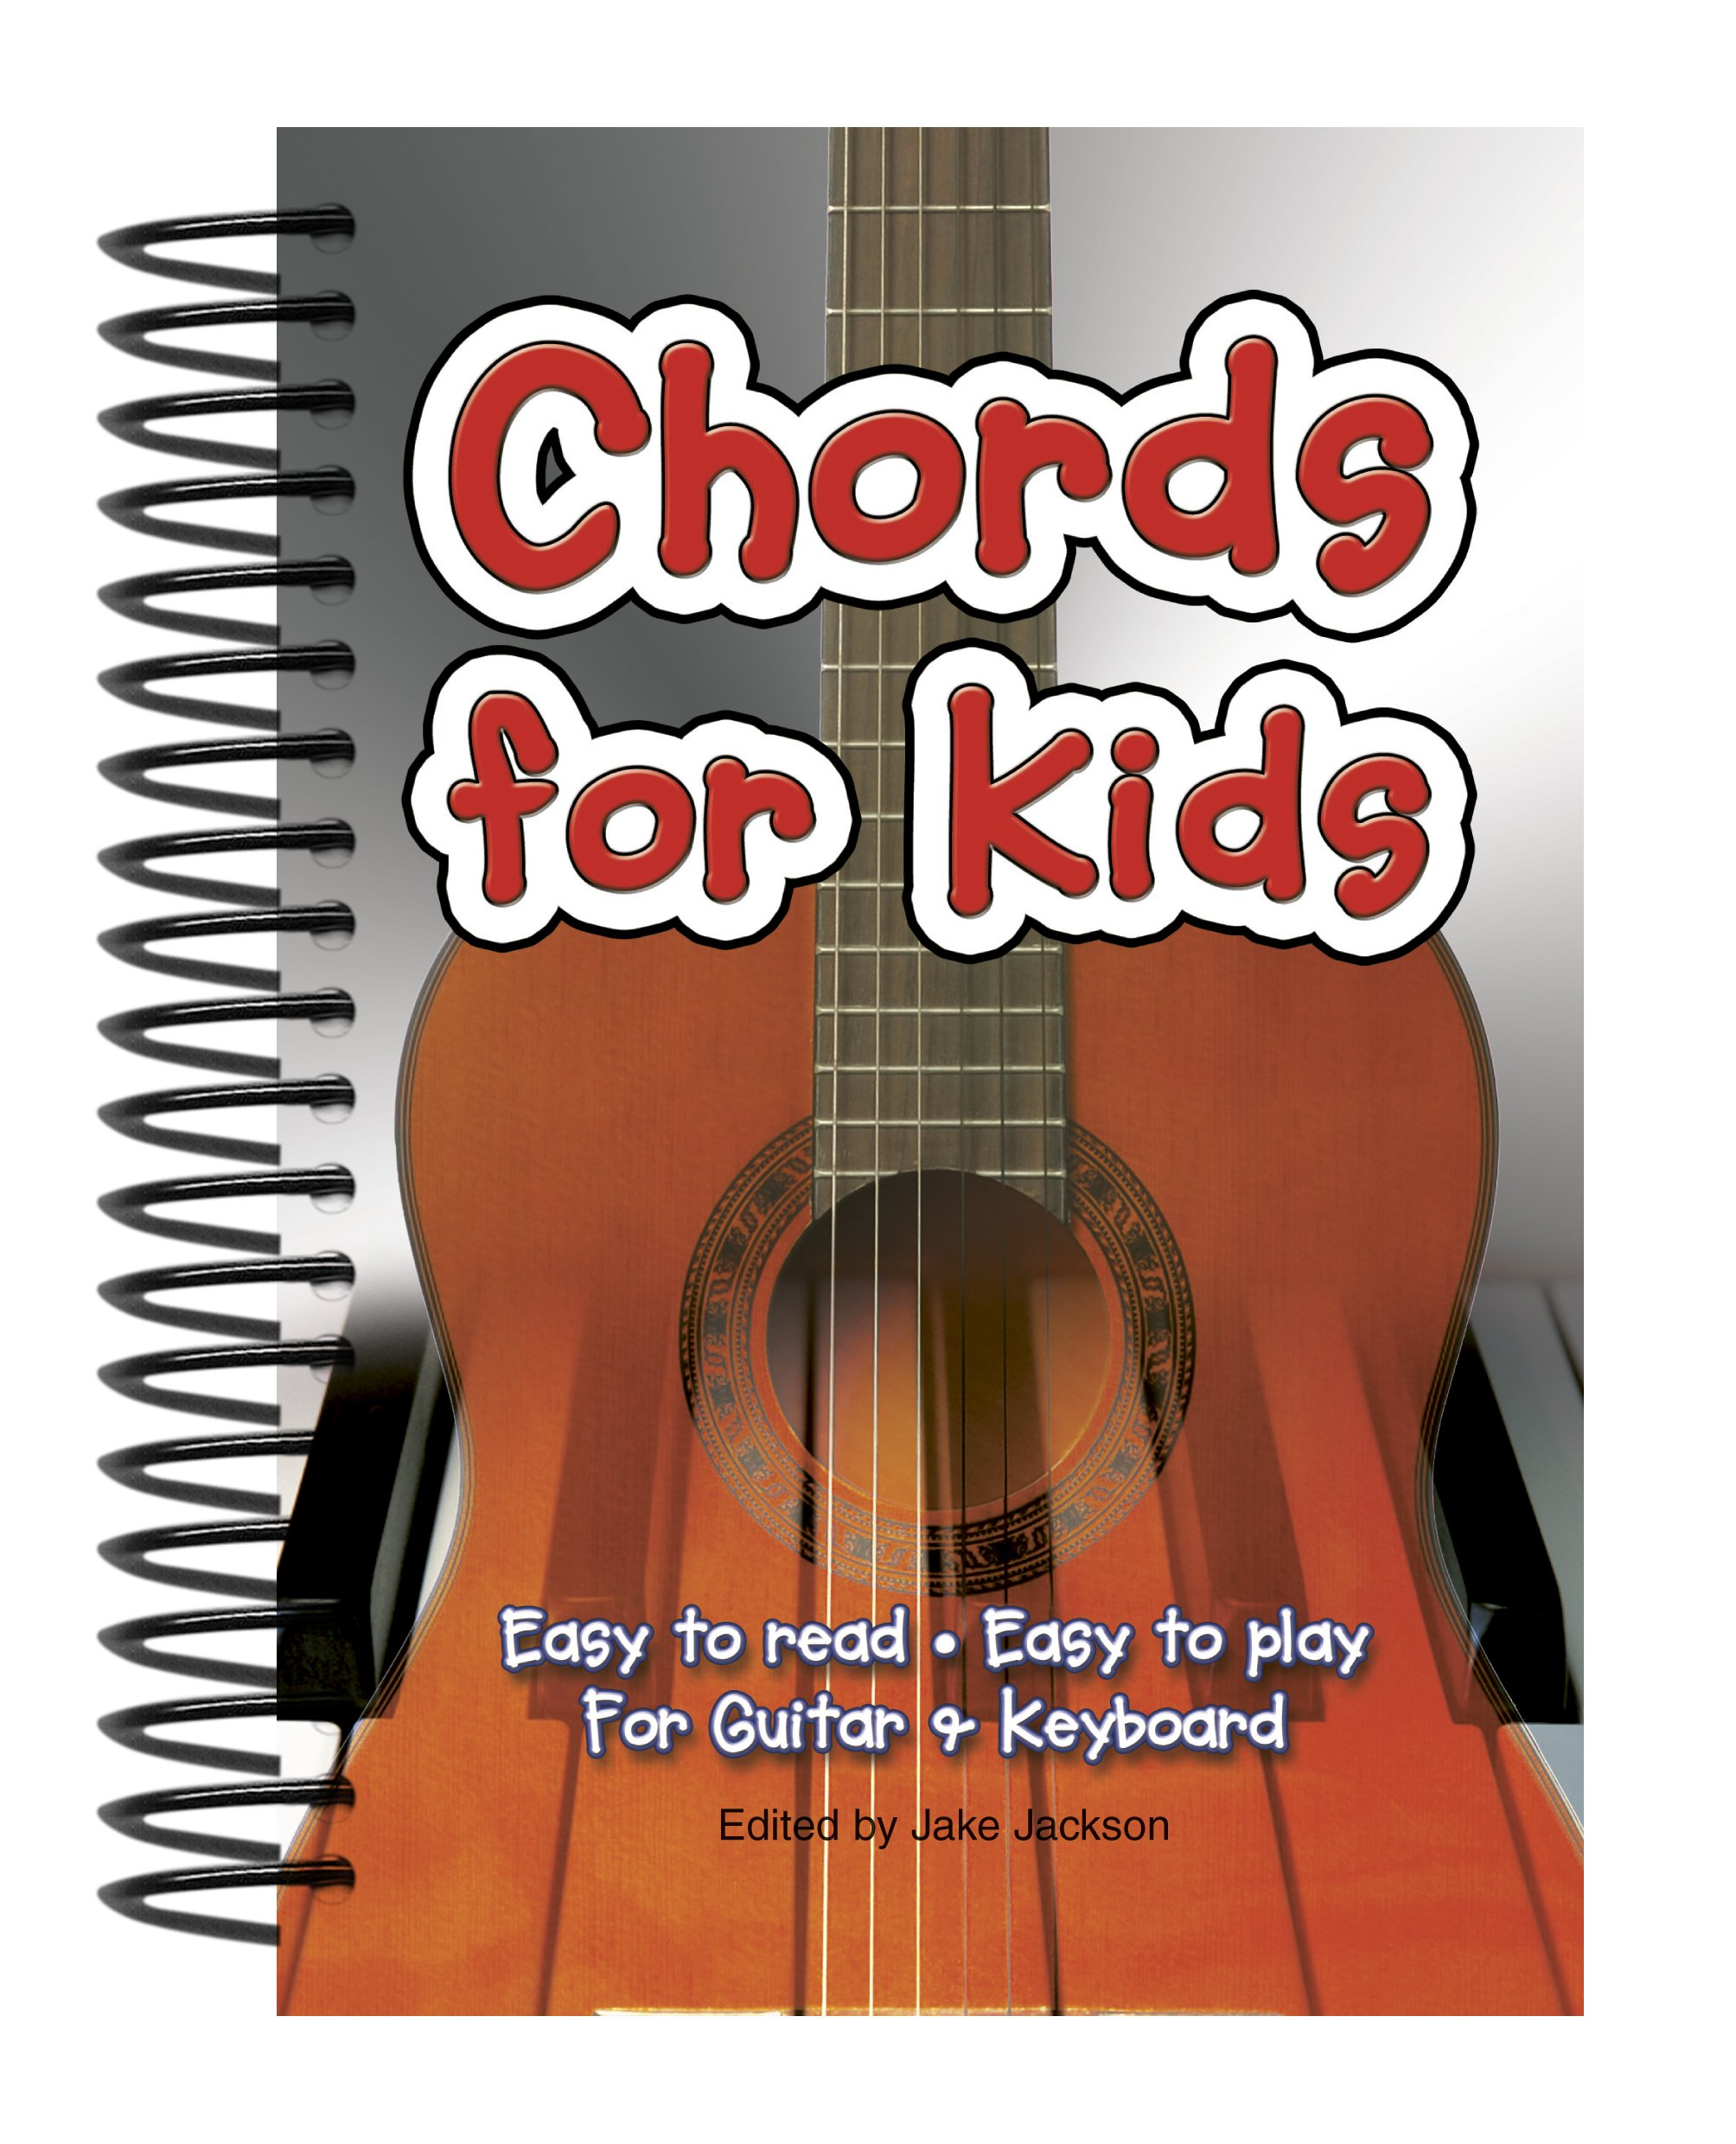 Chords For Kids: Easy to Read, Easy to Play, For Guitar & Keyboard (Easy-to-Use) by Flame Tree Publishing